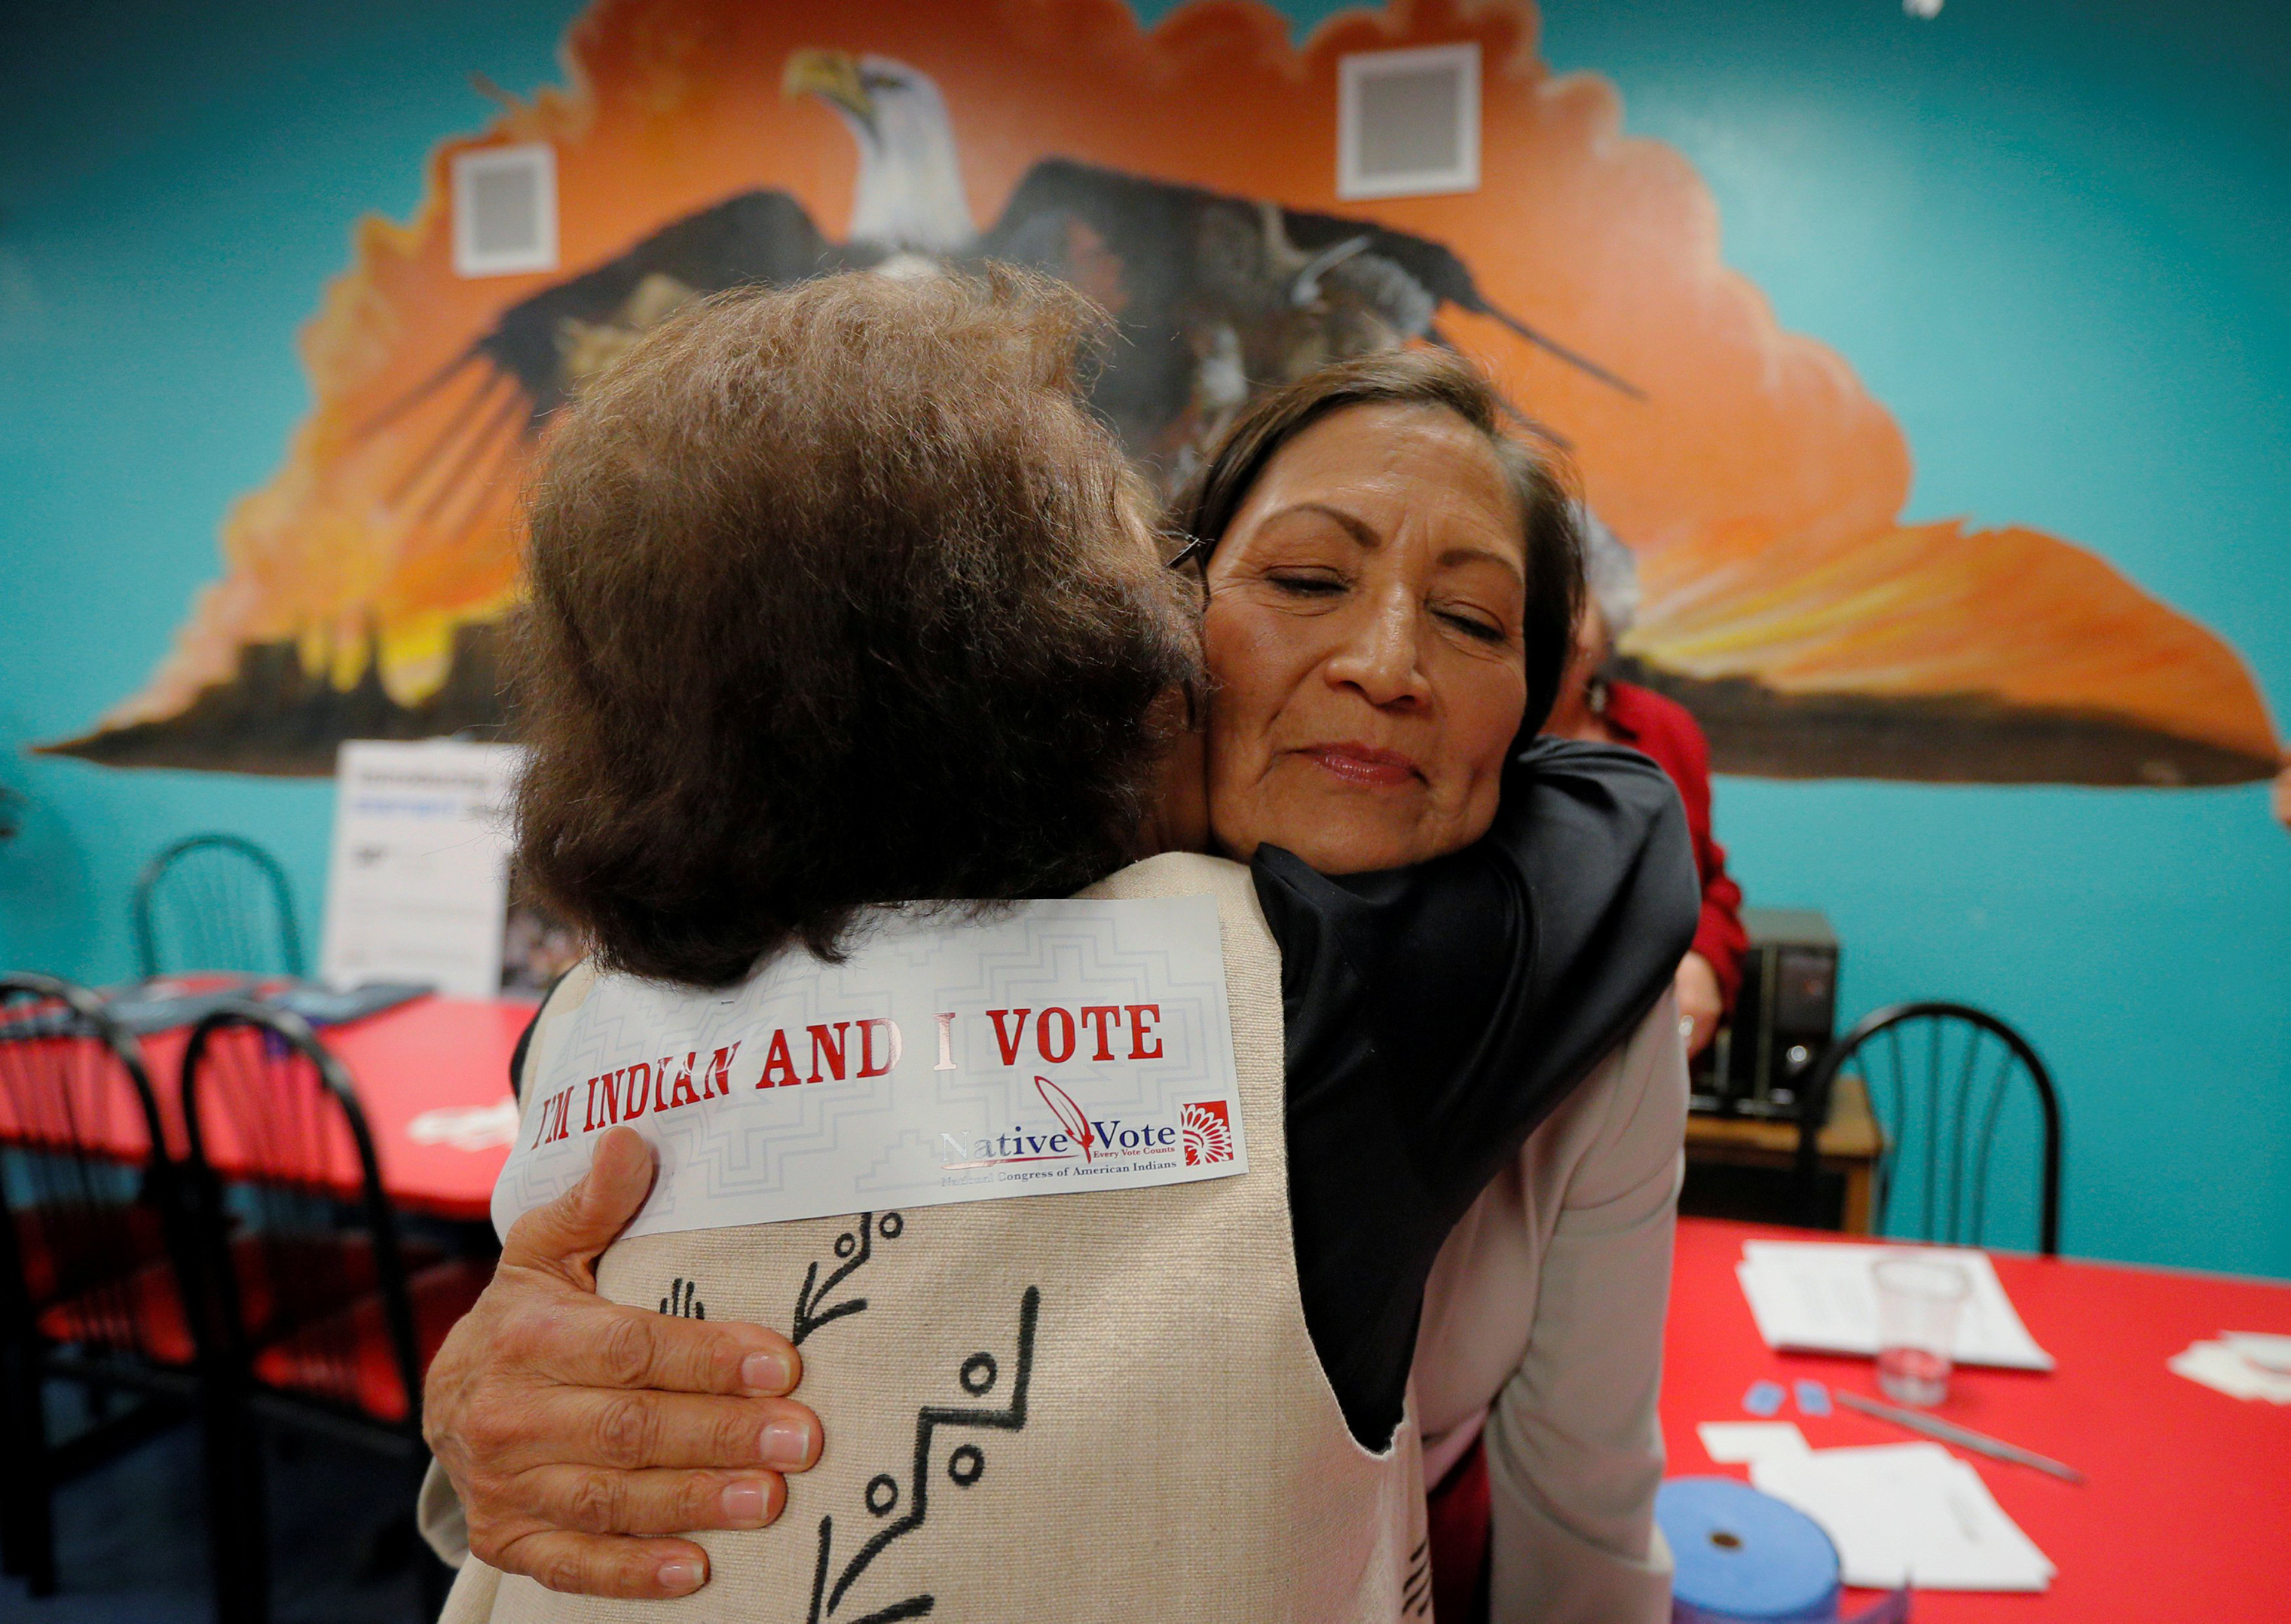 U.S. Democratic Congressional candidate Deb Haaland, who is trying to become the first Native American woman in the U.S. House of Representatives, hugs Dottie Tiger at a Native Vote Celebration on Election Night in Albuquerque, N.M.